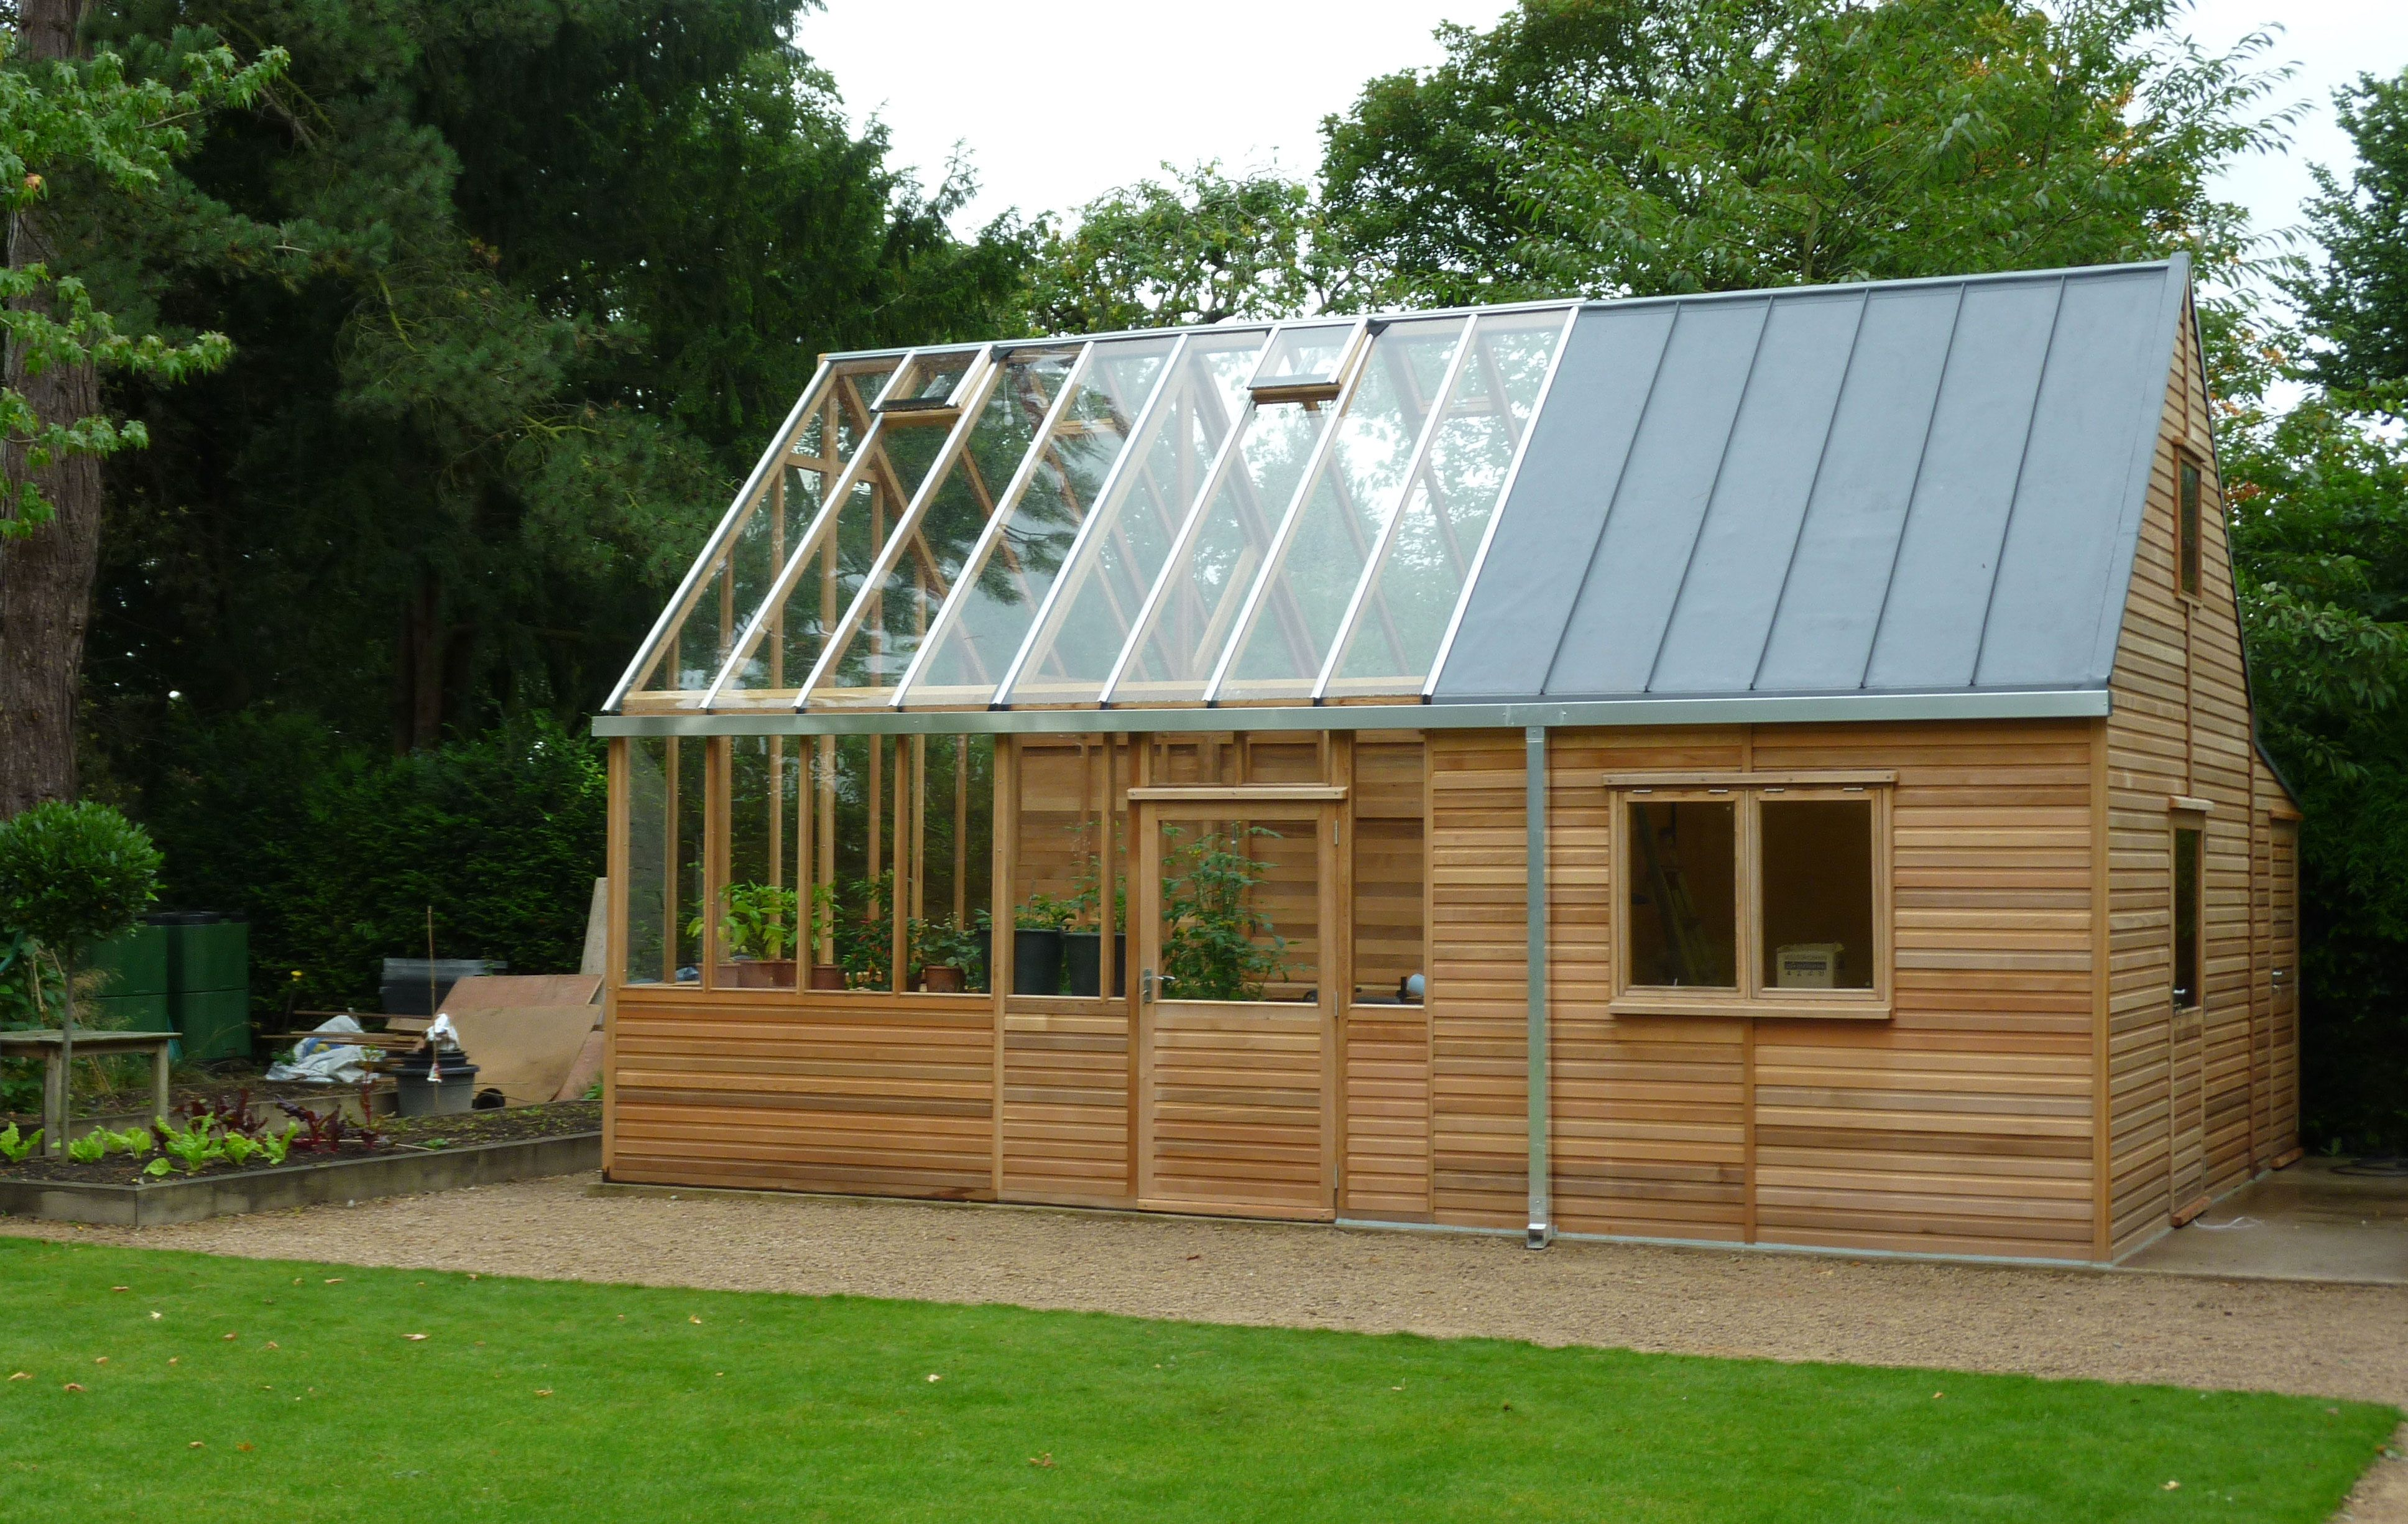 installing aluminium roofing on shed Google Search